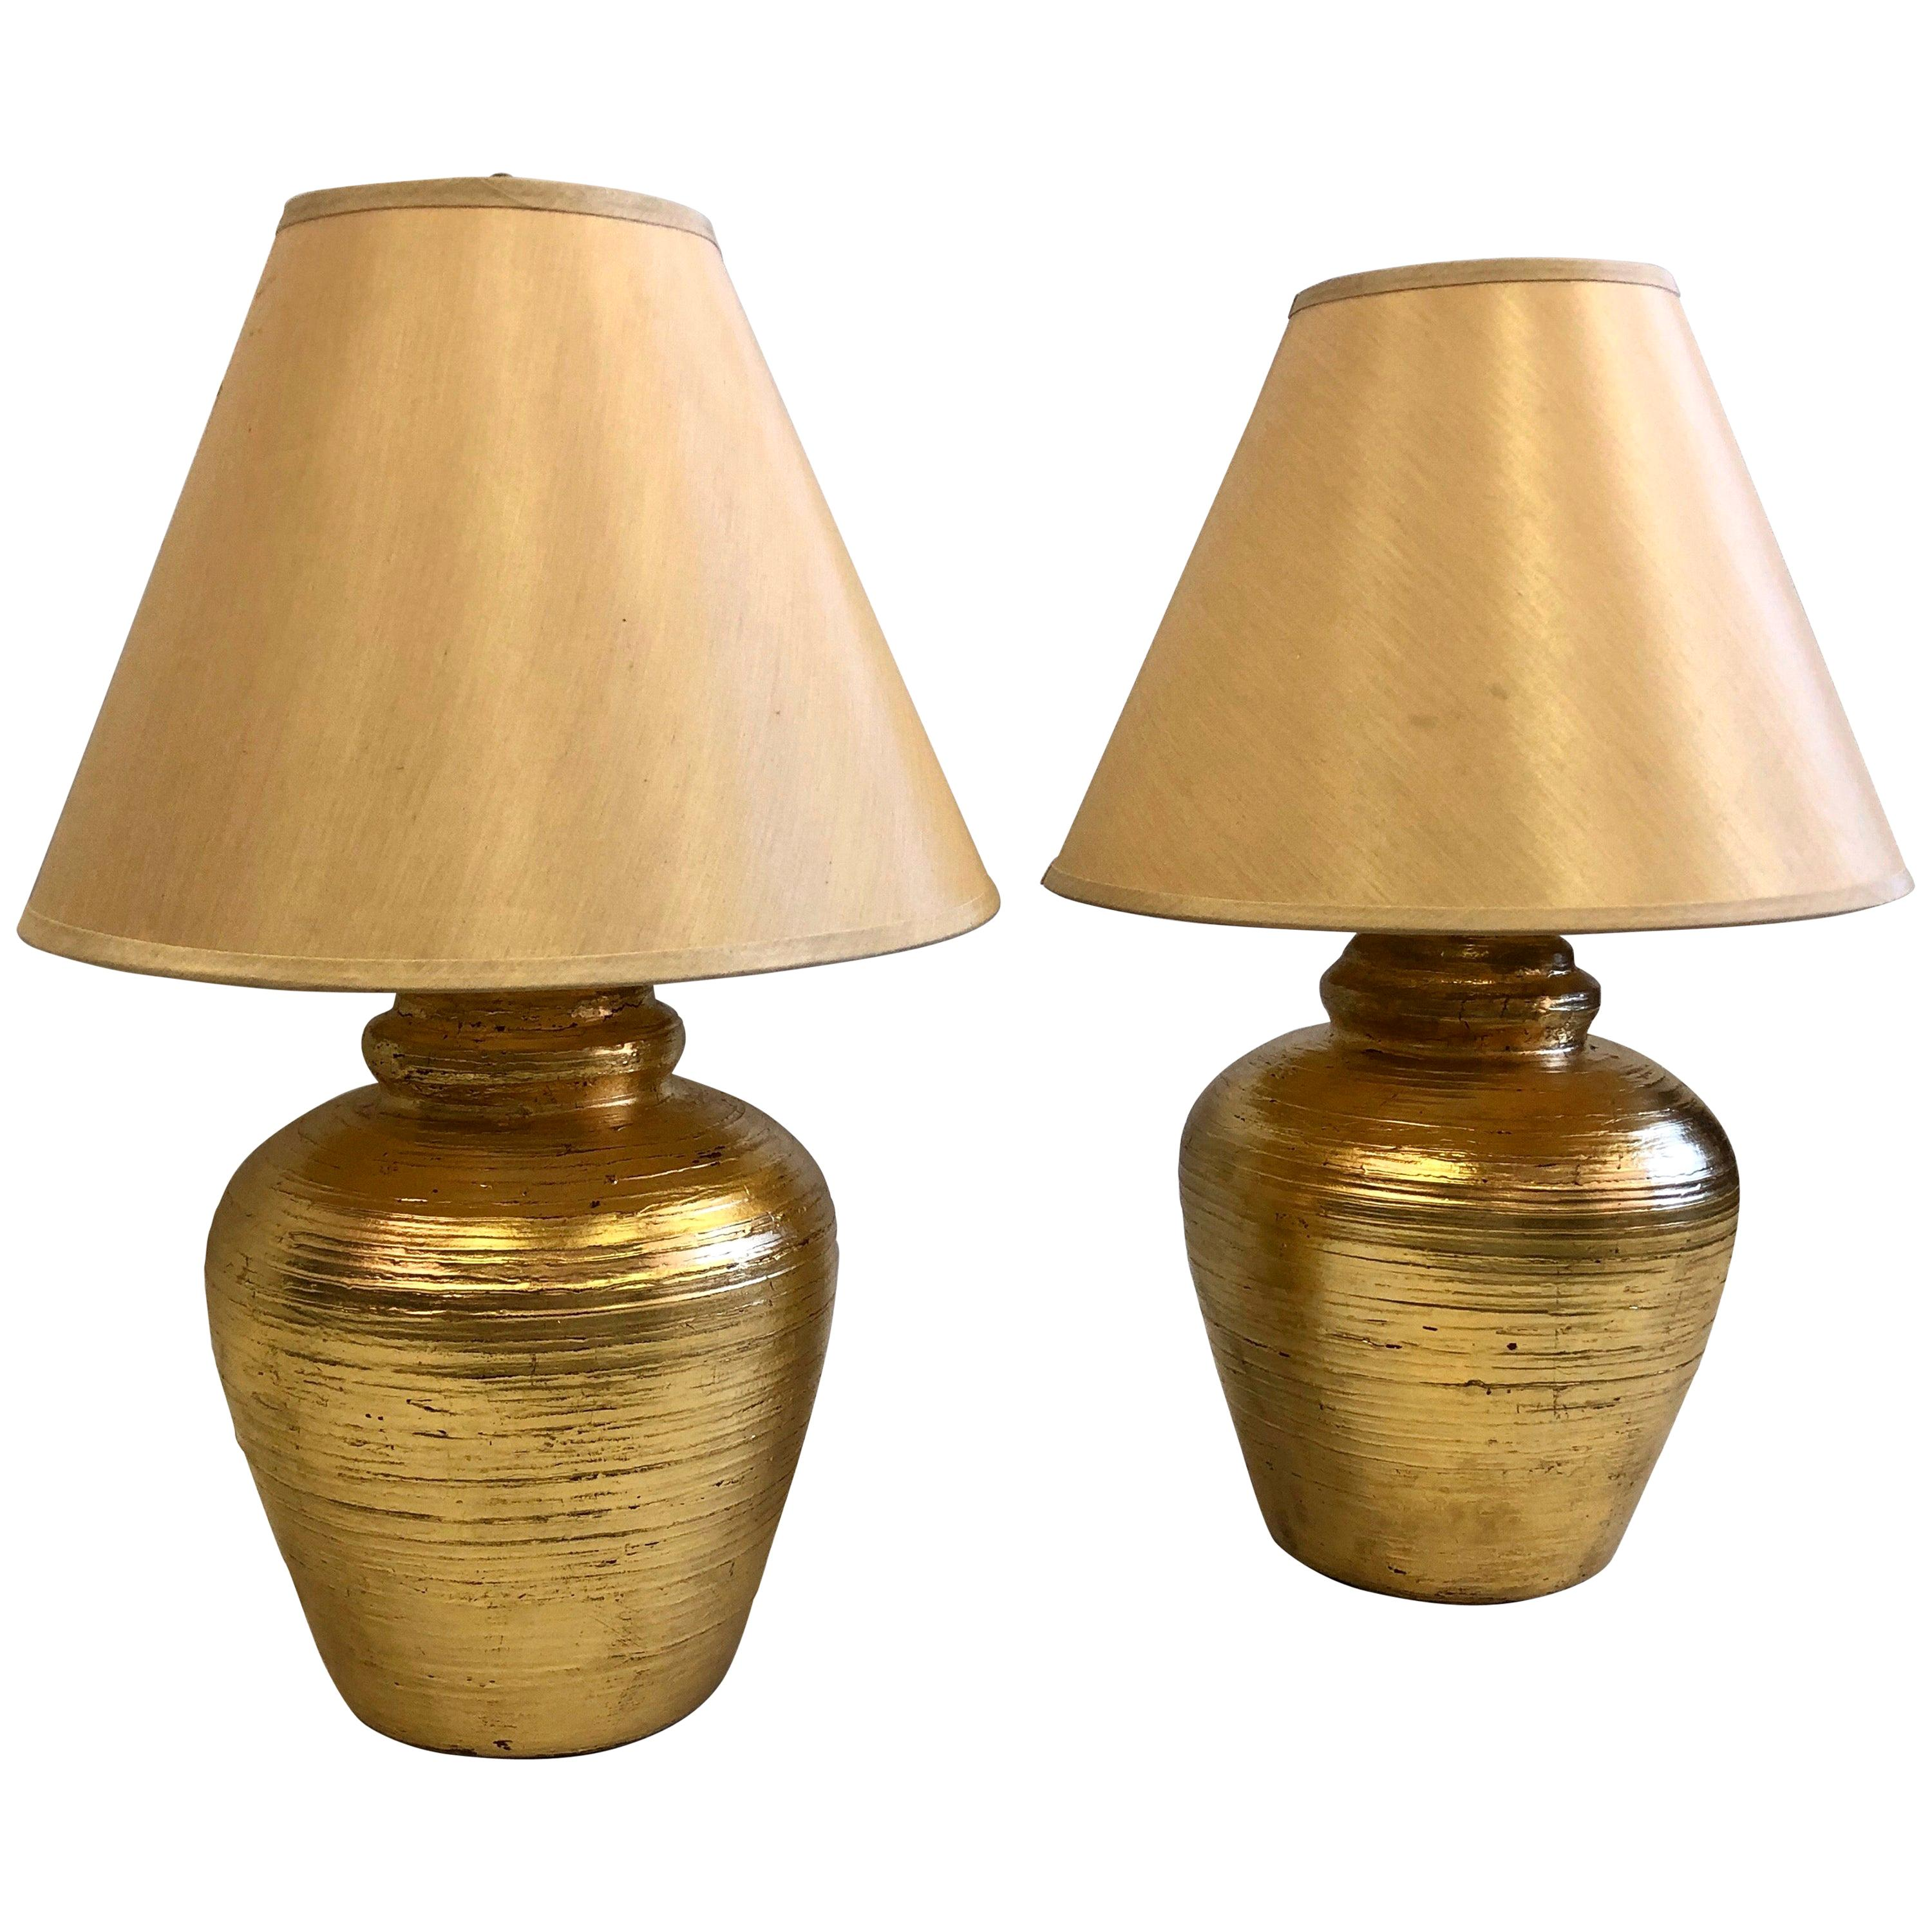 Pair of French Gilt Terracotta Table Lamps, Giacometti for Jean-Michel Frank